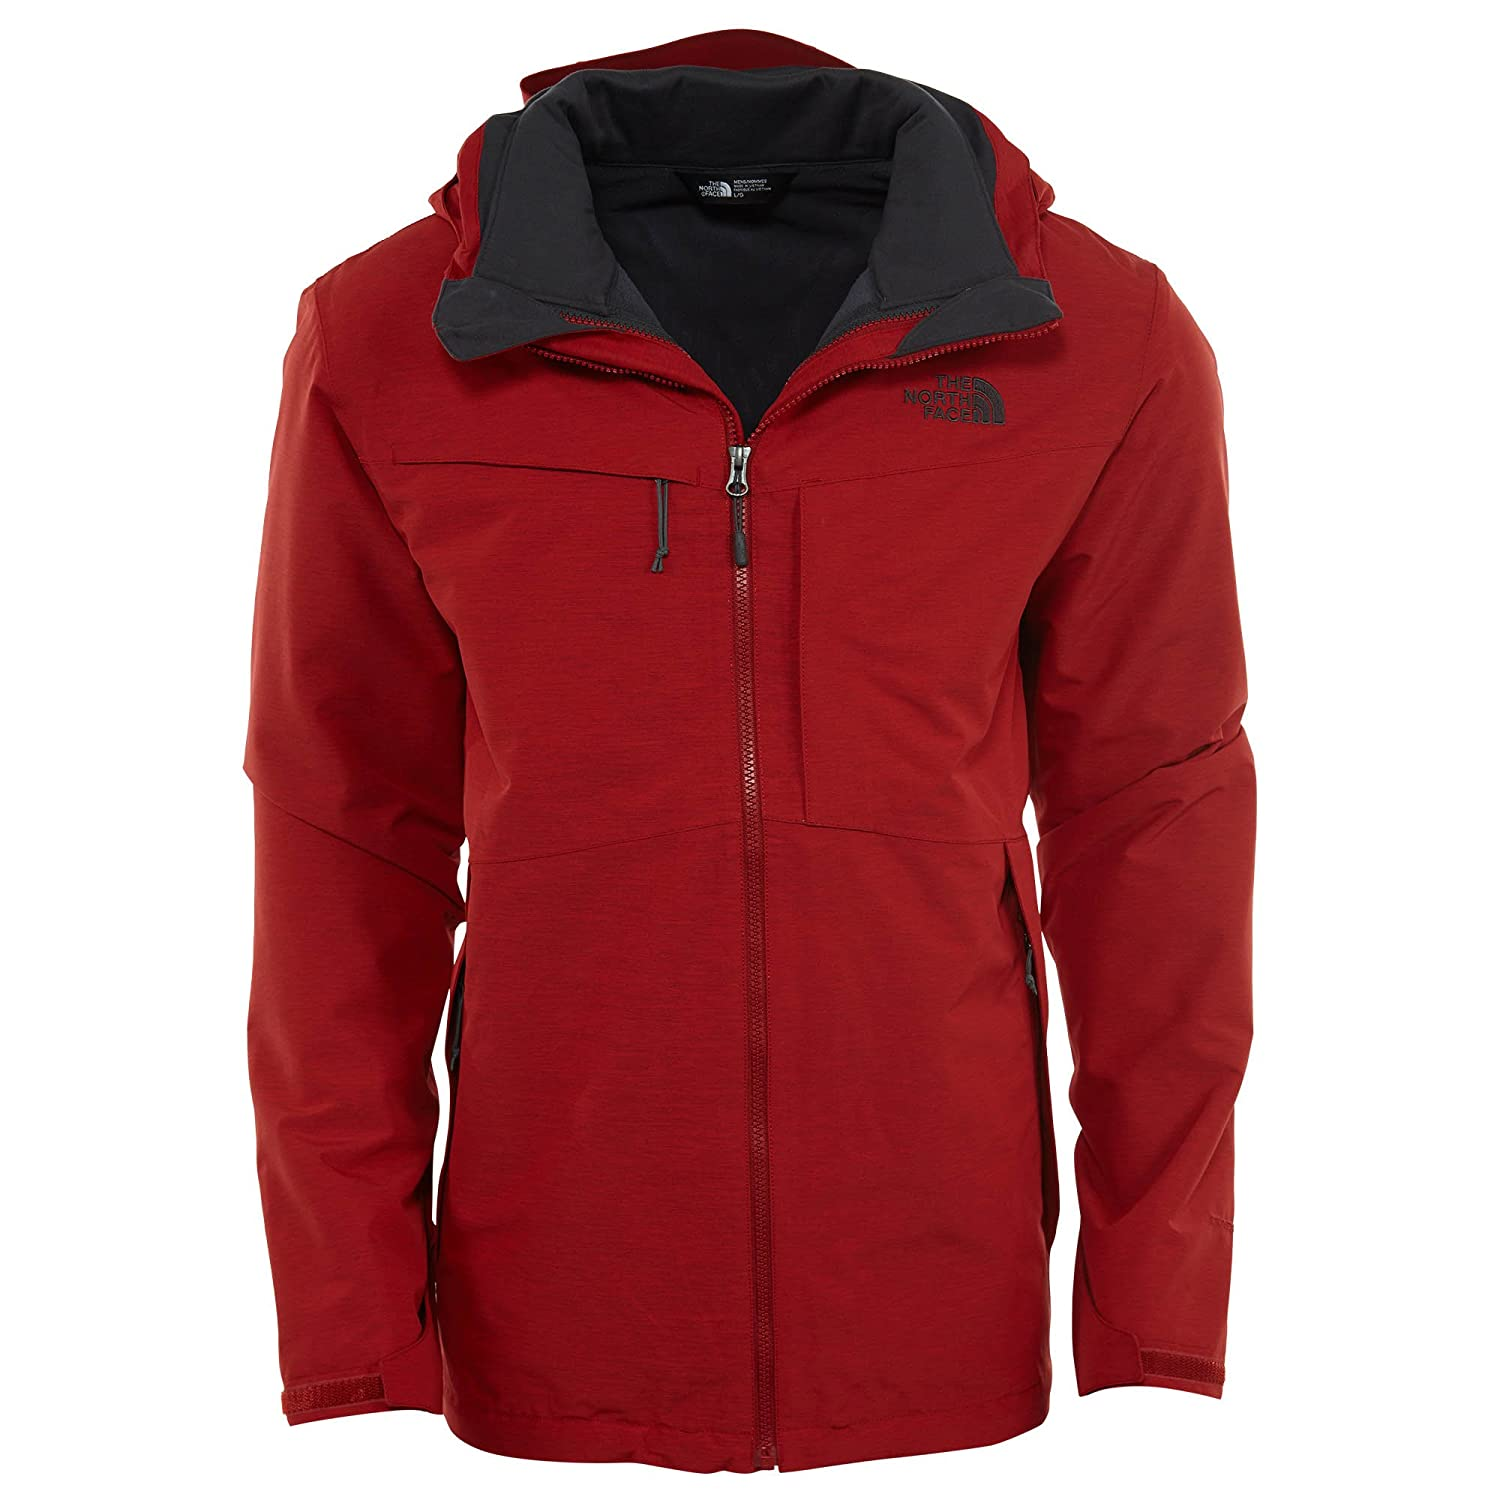 The North Face Condor Triclimate Jacket Men's 2TCM